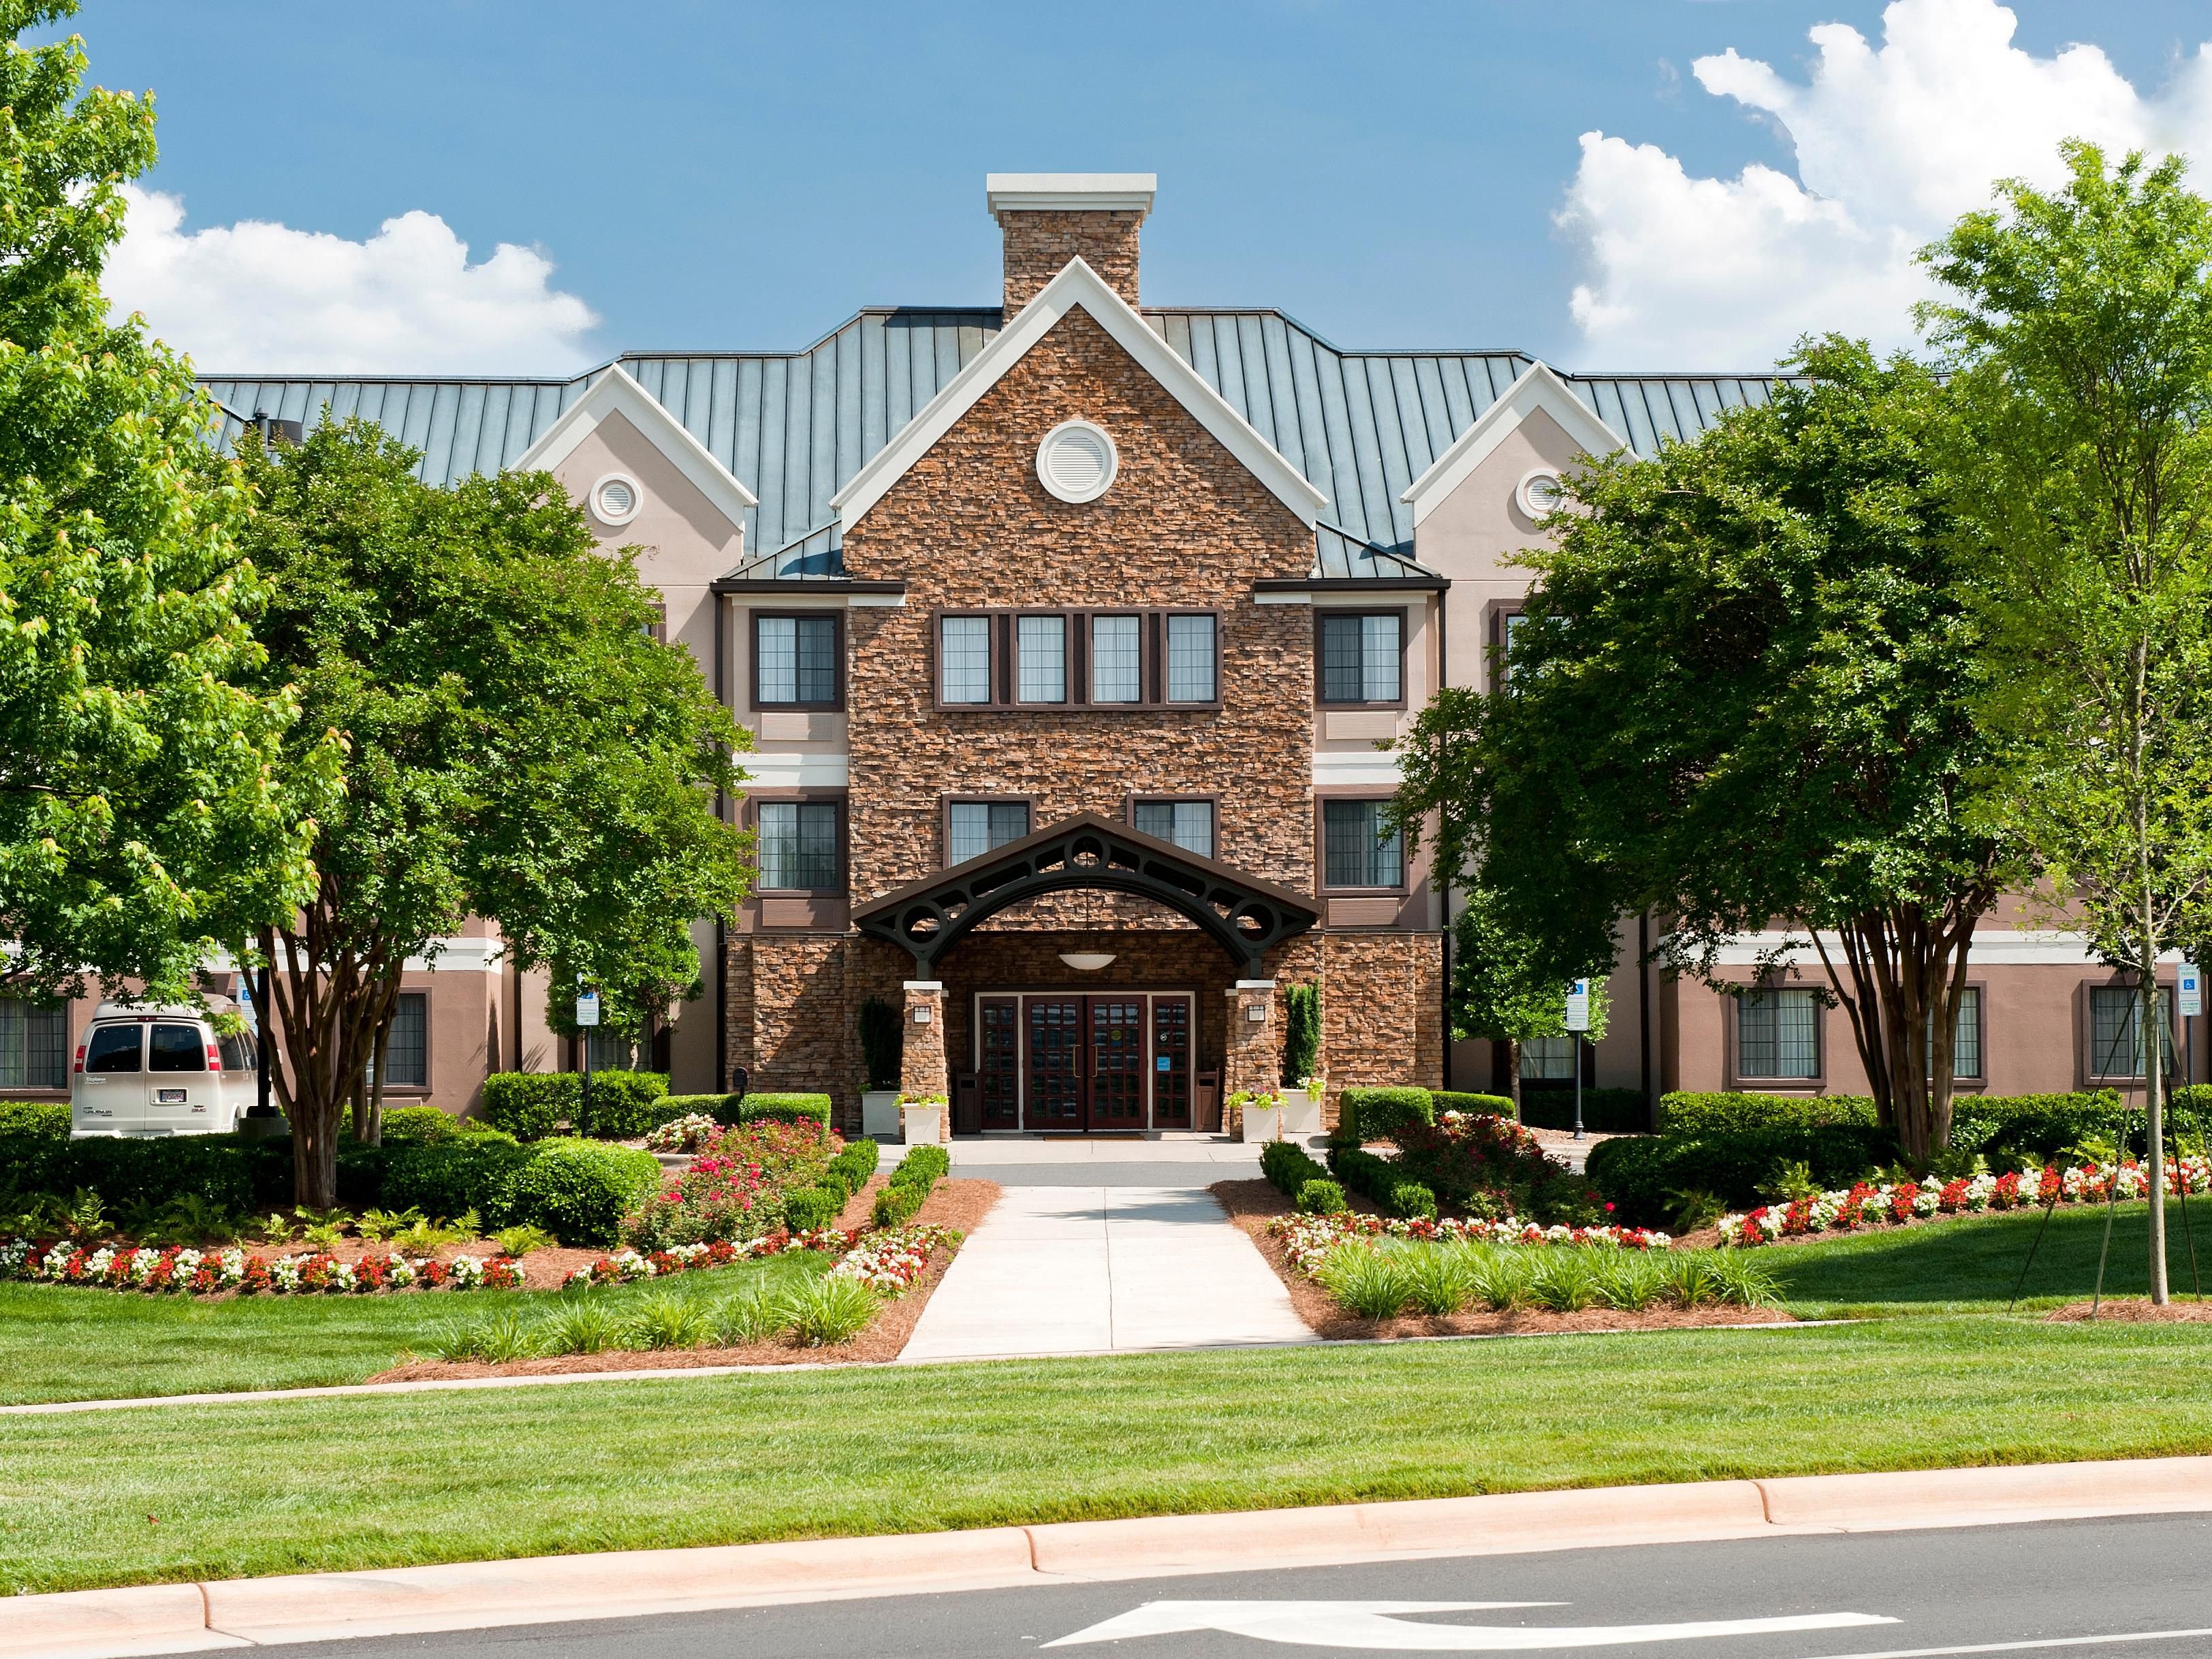 Charlotte Hotels Staybridge Suites Ballantyne Extended Stay Hotel In North Carolina